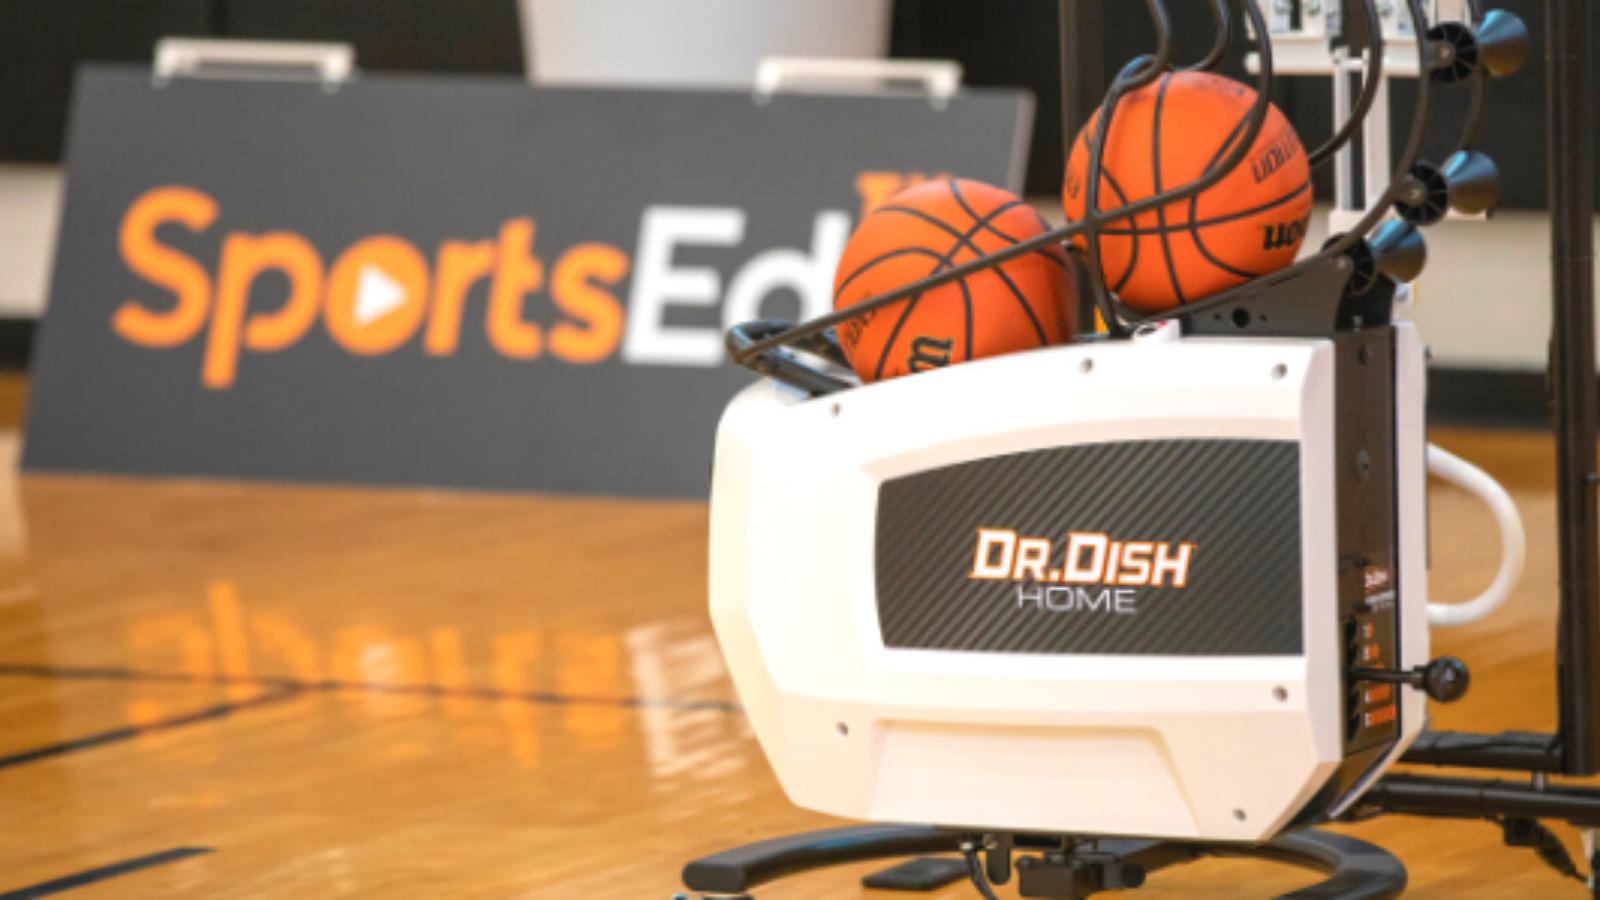 Dr. Dish Partners with SportsEdTV for Video Instruction Series